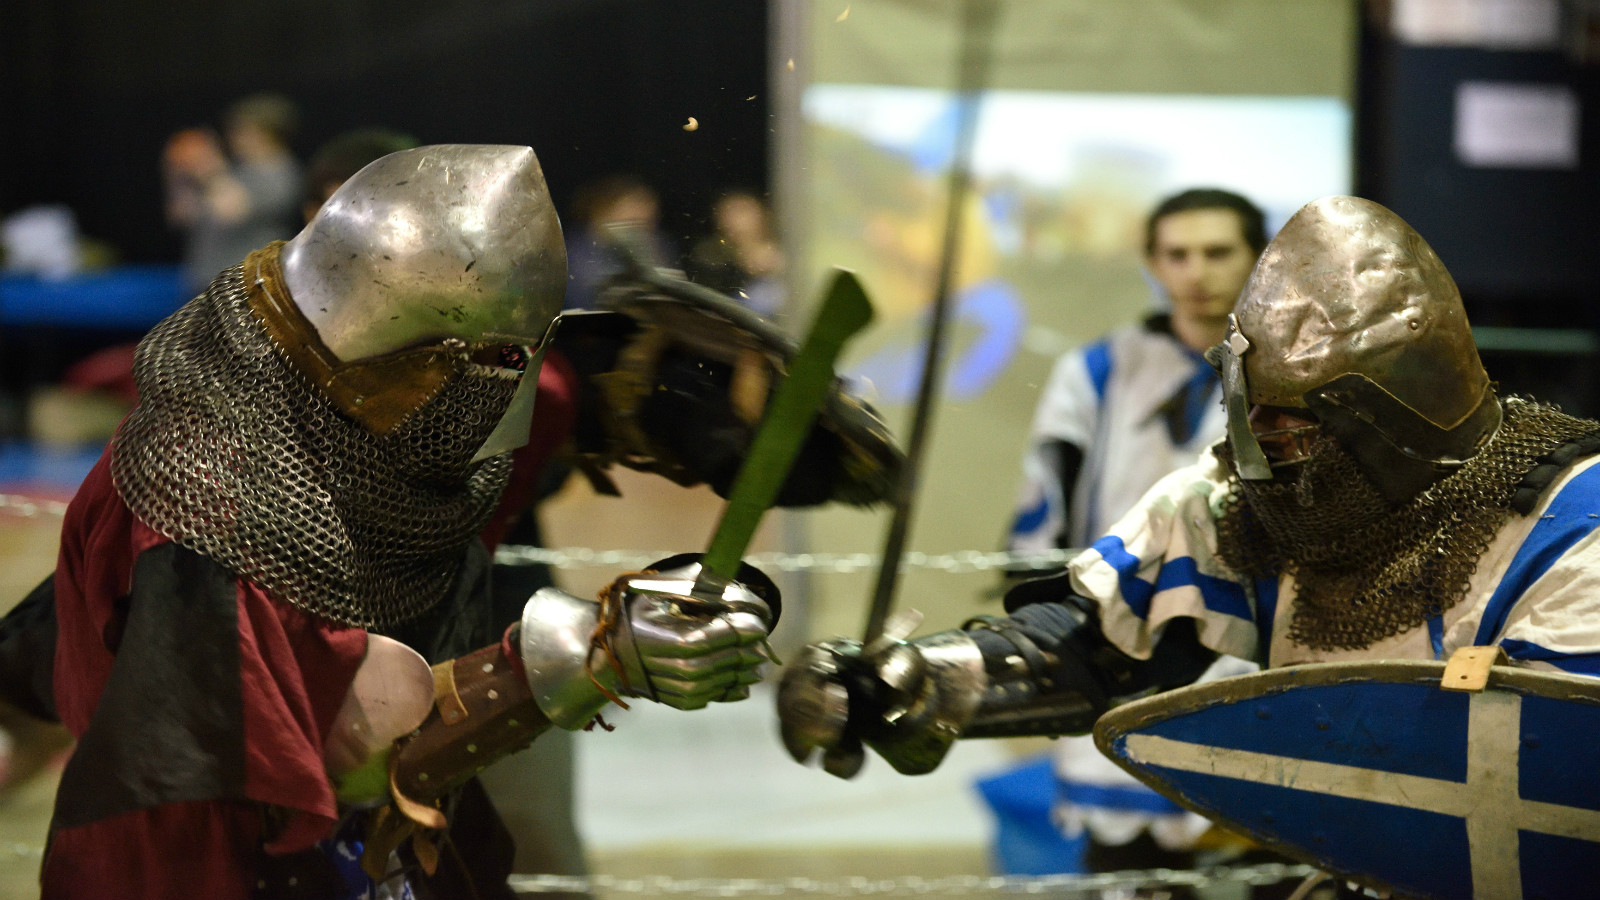 Warriors duel in world medieval fighting championship in israel